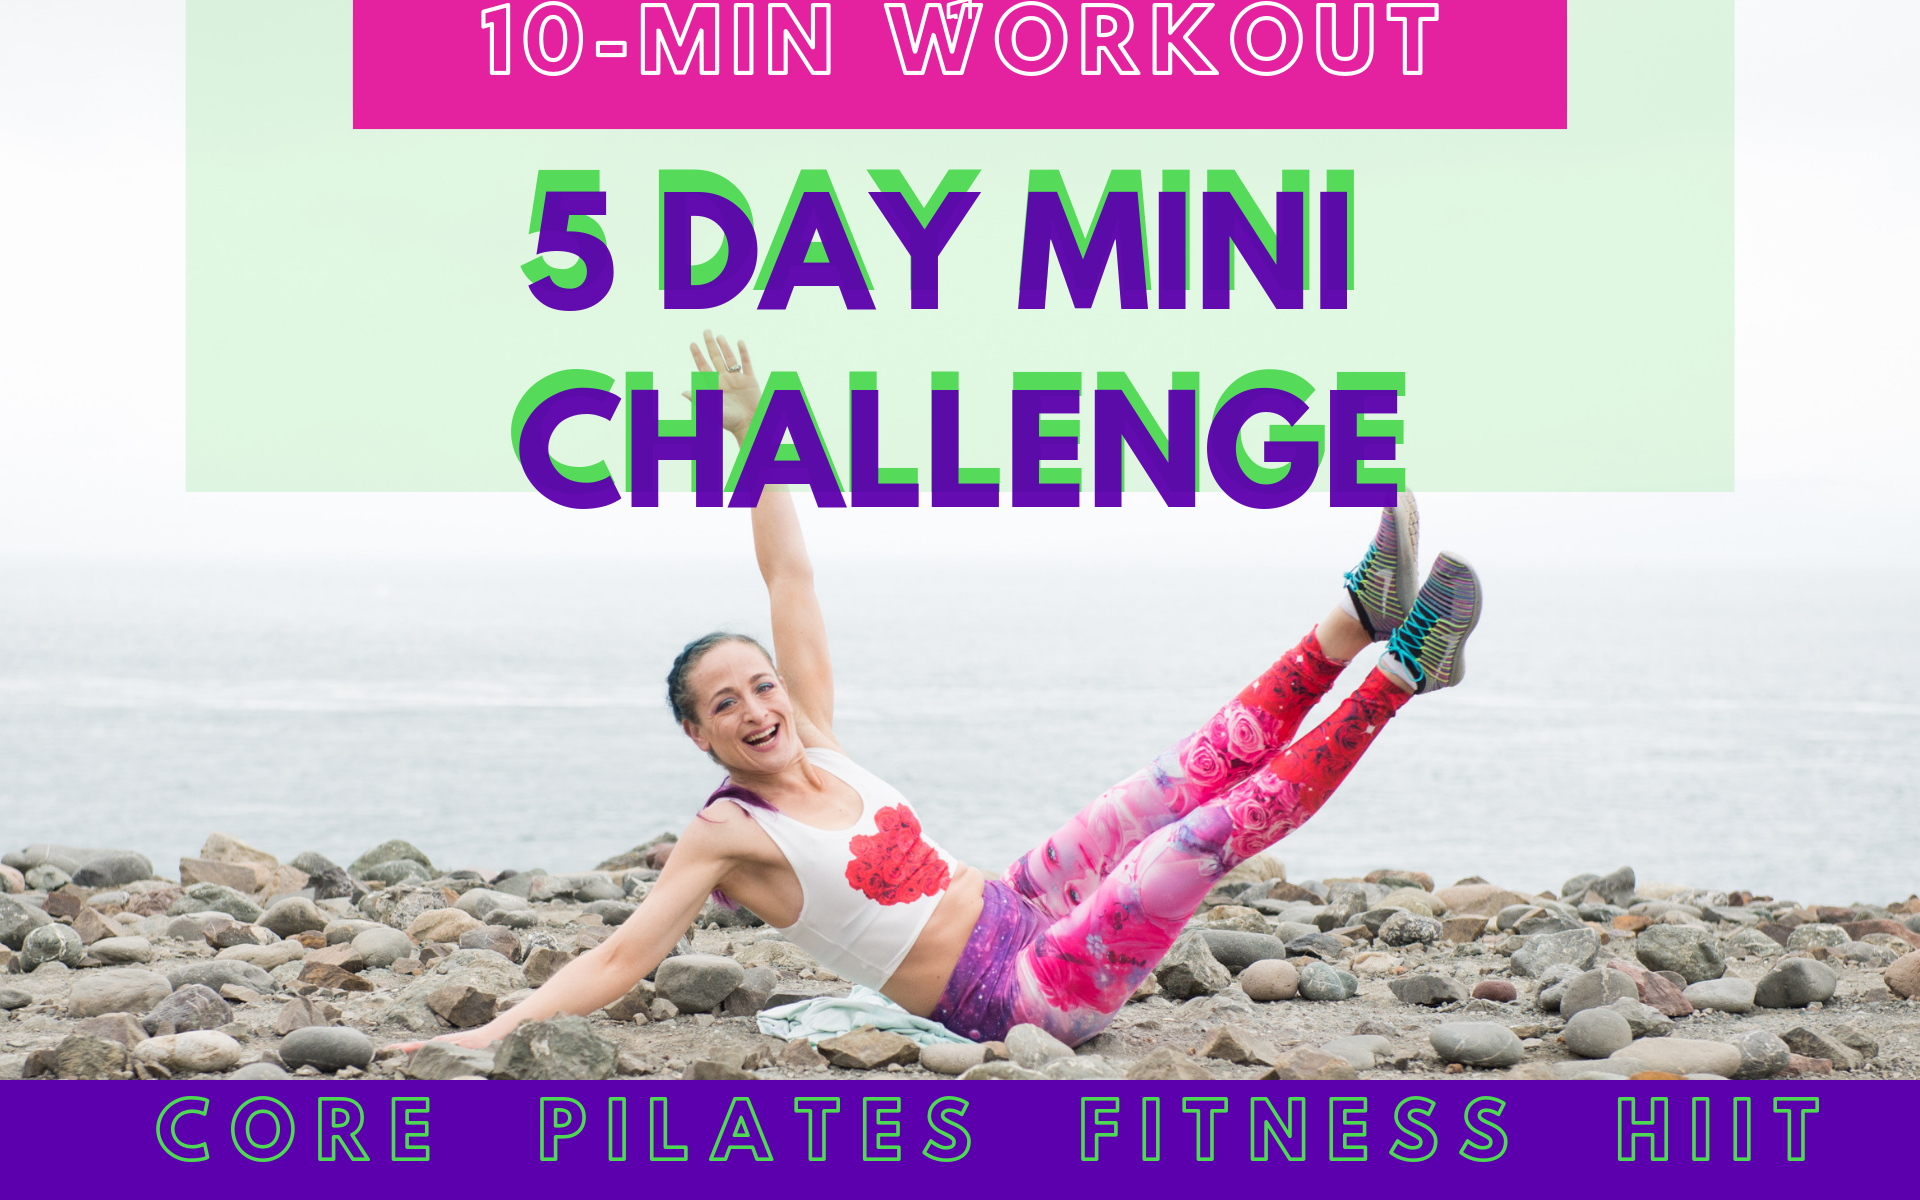 jessi fit pilate 5 day fit challenge .png